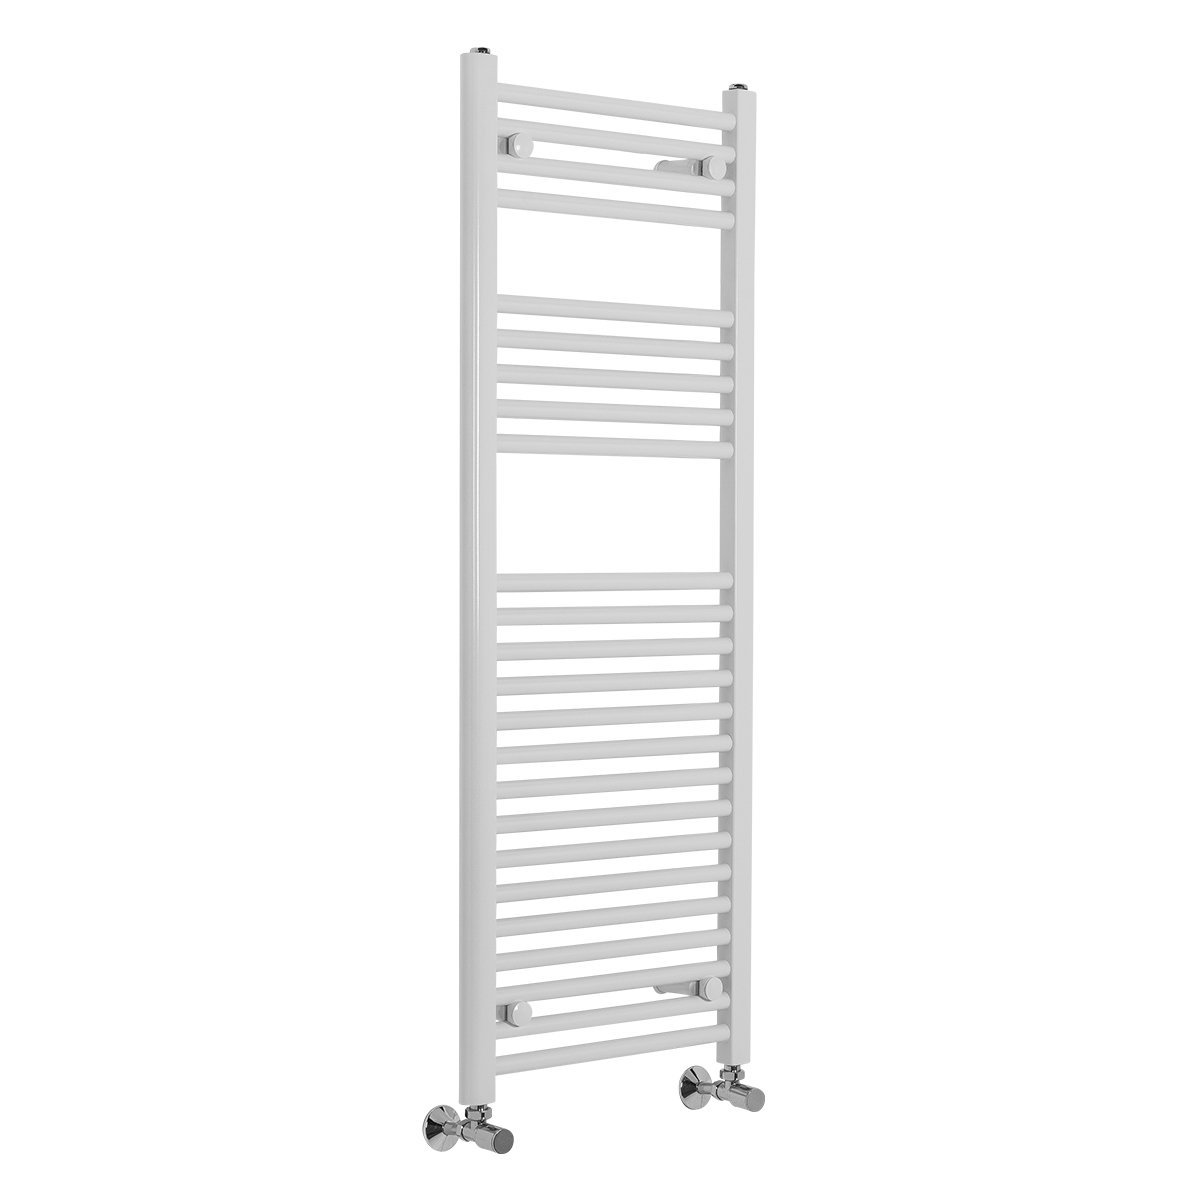 Contemporary Straight Heated Bathroom Towel Rail Radiator Rad 900 x 450 White WarmeHaus